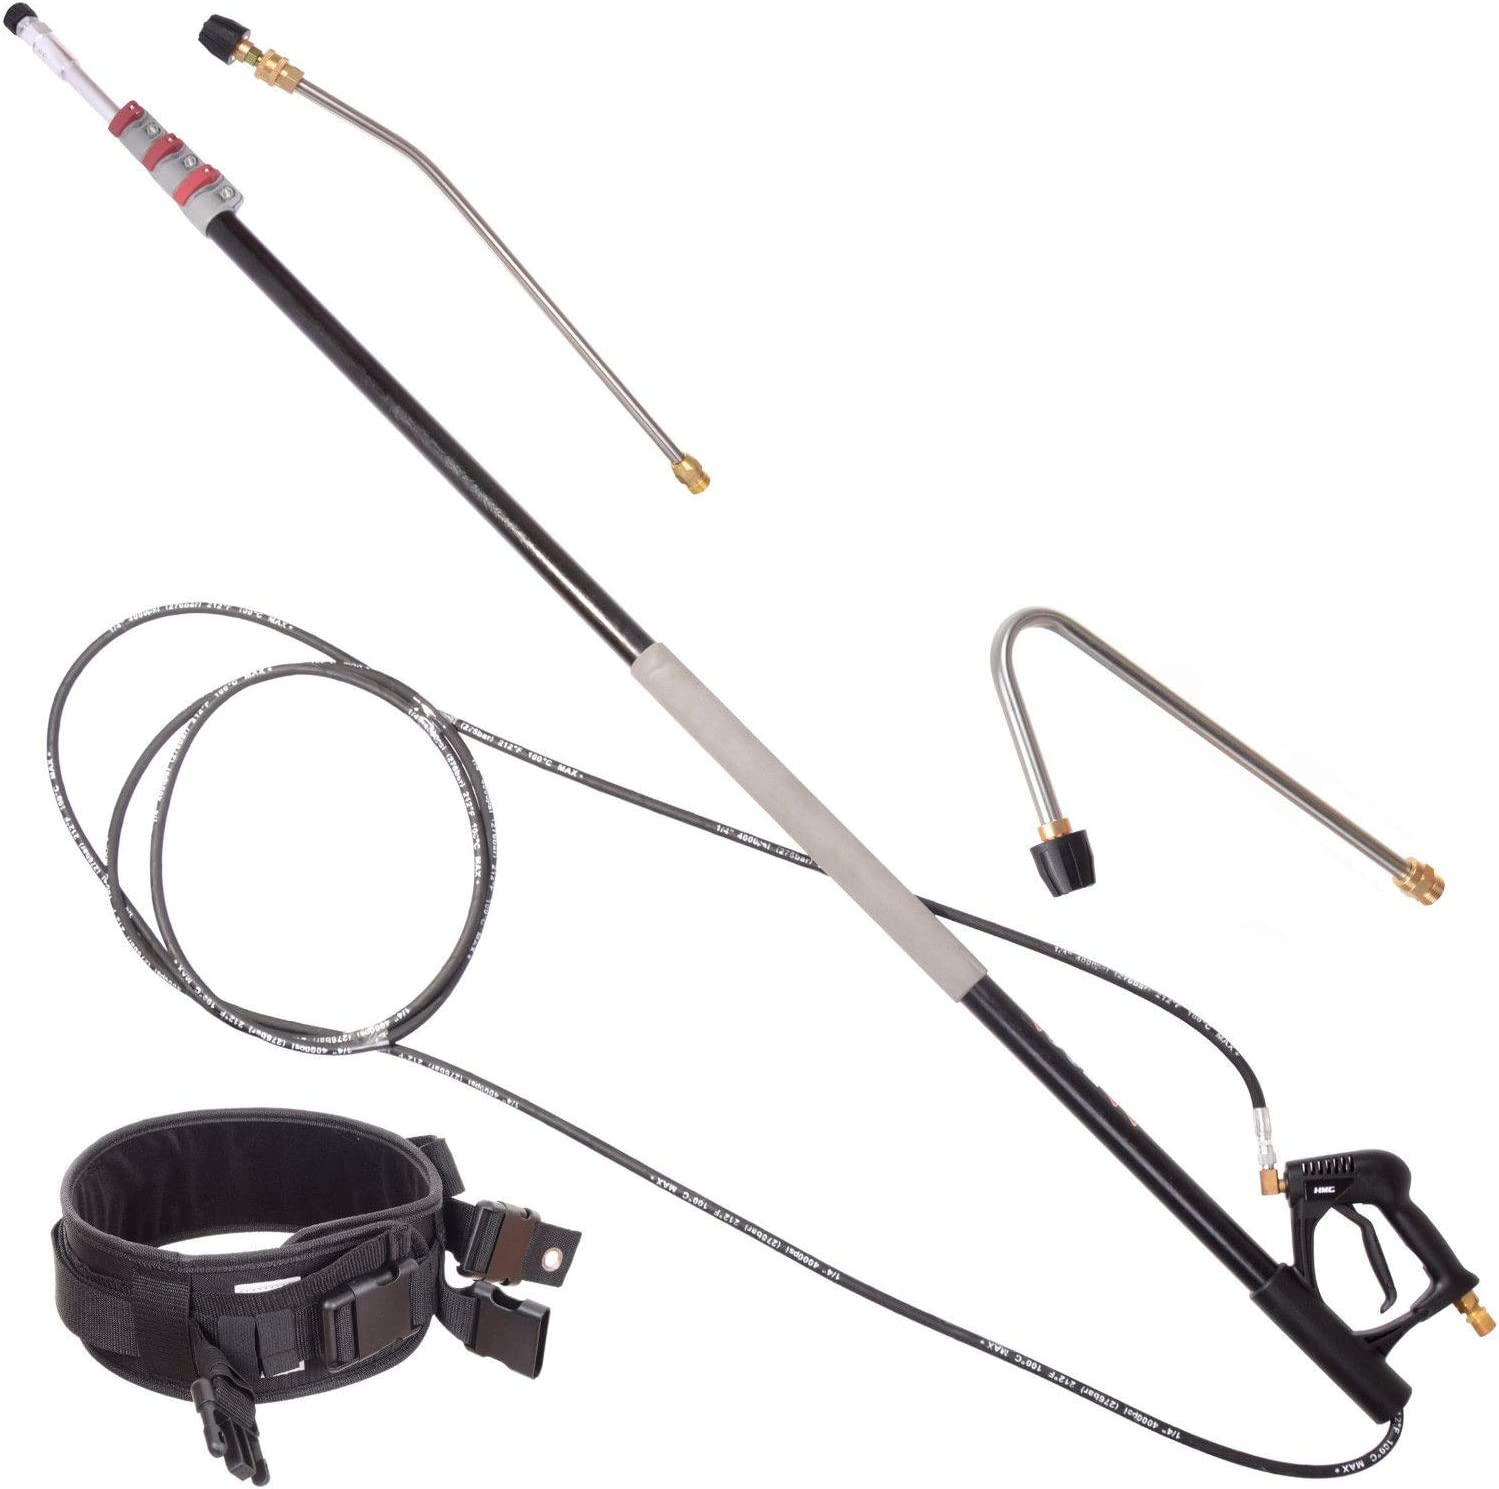 24ft Telescopic Lance for KARCHER Pressure Washer 7.4m Nozzle Belt with Gutter Cleaning Lance